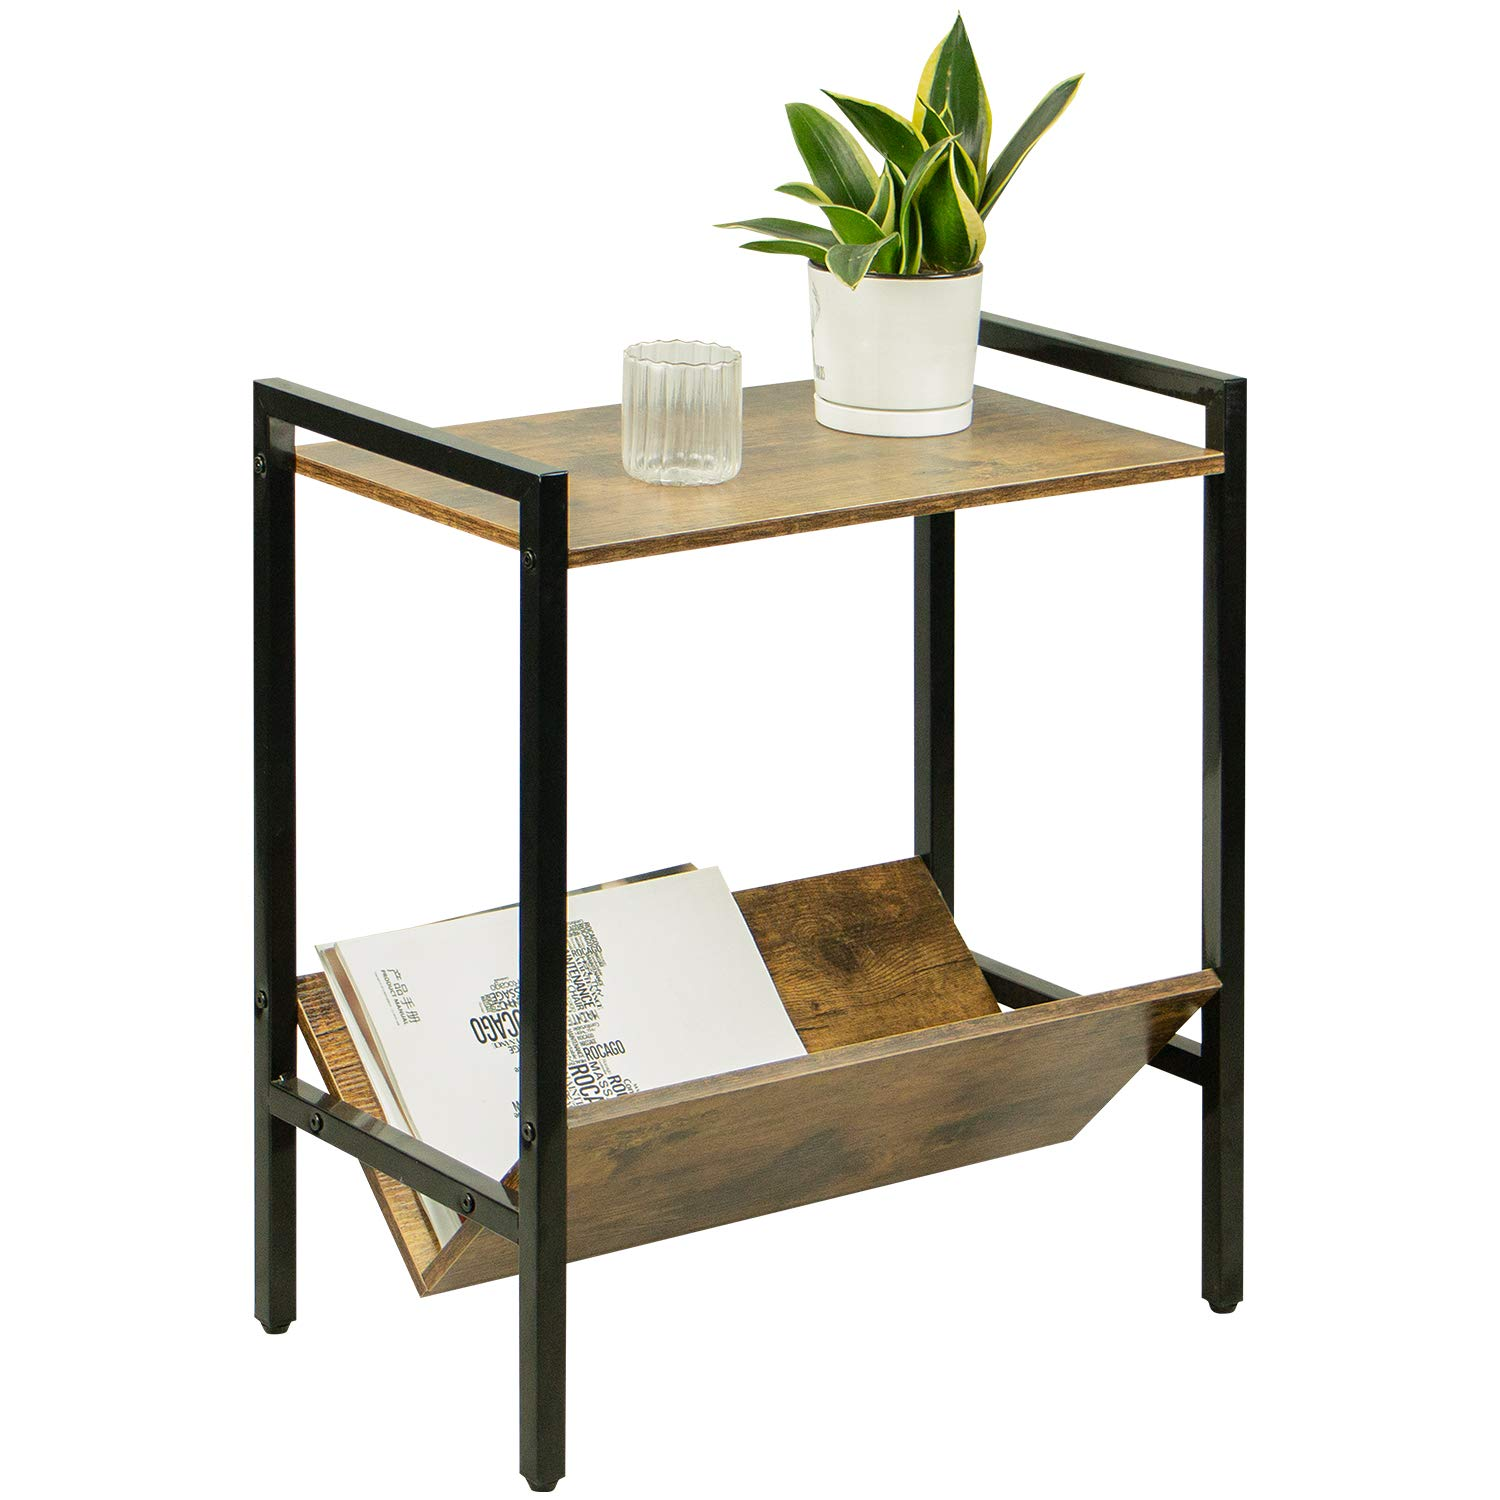 Petiture Industrial Side Table Bedroom with Storage, Side Tables Living Room,Wood End Table Storage,Wood Small Nightstands,Rustic Magzine Rack Tables, Sturdy and Easy Assembly,Brown